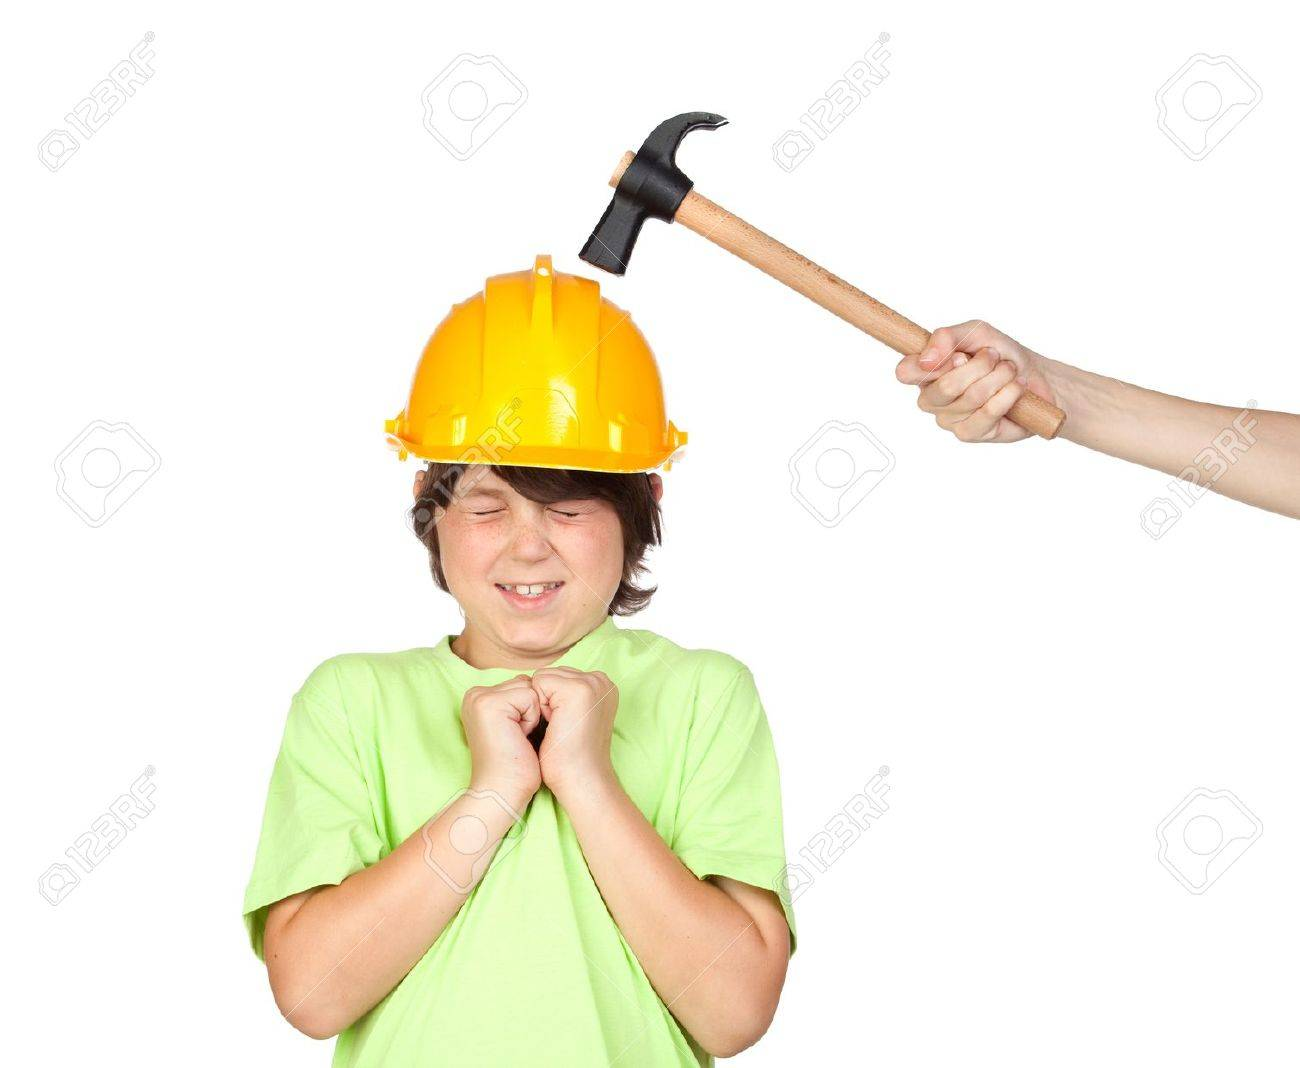 Frightened child with yellow helmet and hammer over a white background Stock Photo - 7271840